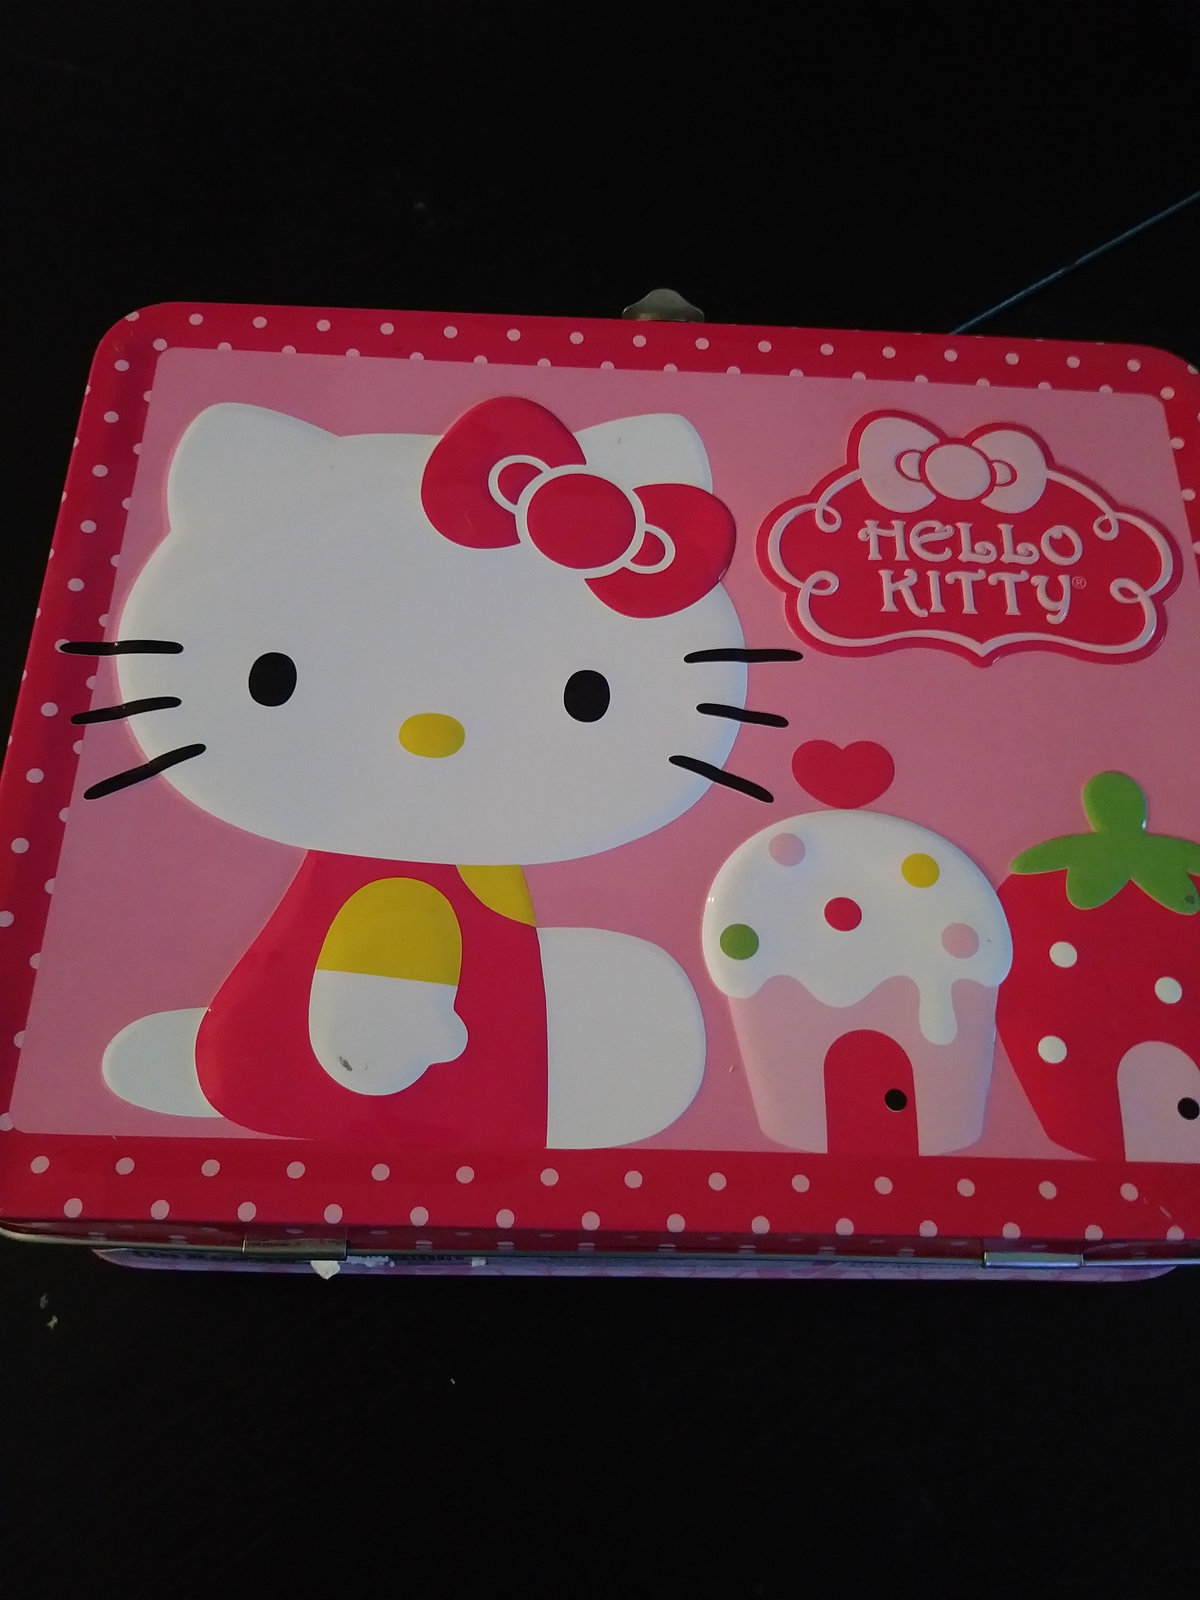 1976  Hello Kitty by Sanrio USA Tin Lunch Box  Tin Box Co. Dongguan,China